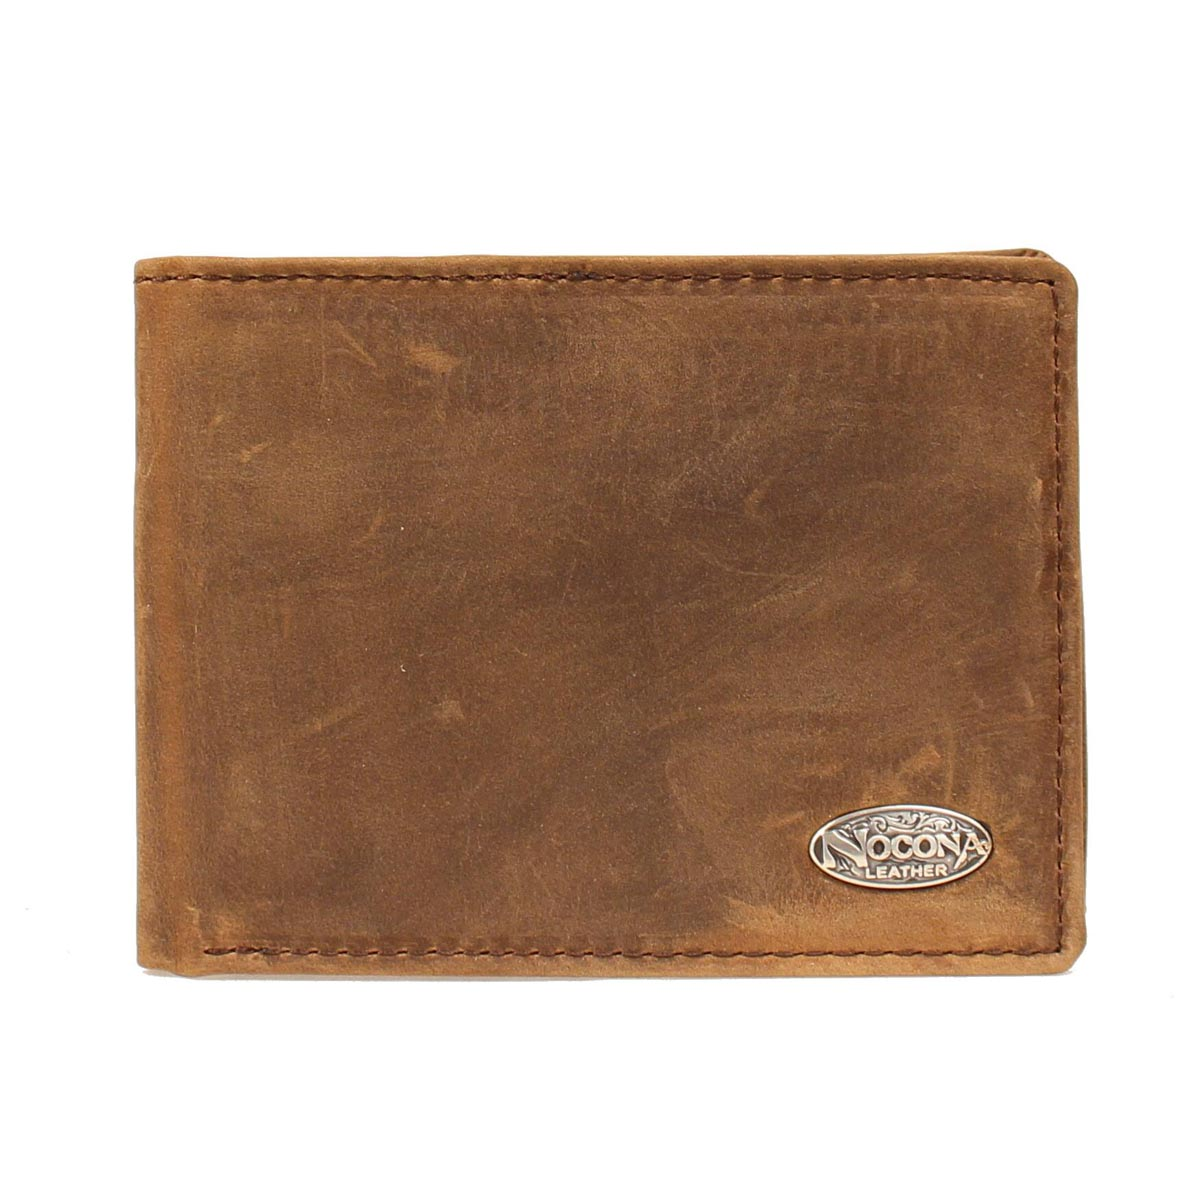 Nocona Medium Brown Distressed Bifold Wallet